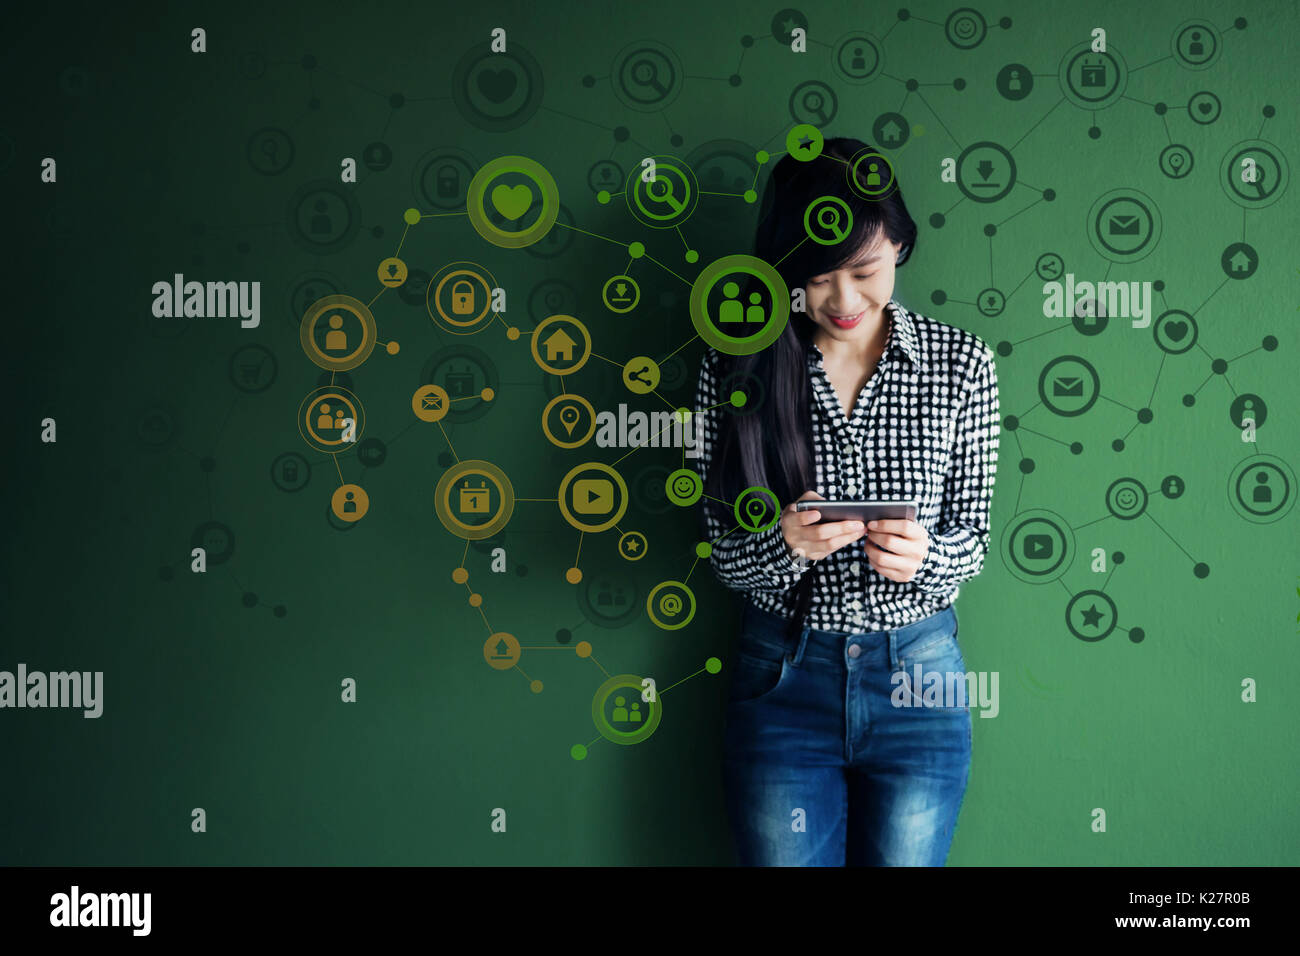 Communication Technology on daily life via Smart Phone Concept, Social media or Network system present over Soft focus of Happy Smiley face Woman stan - Stock Image